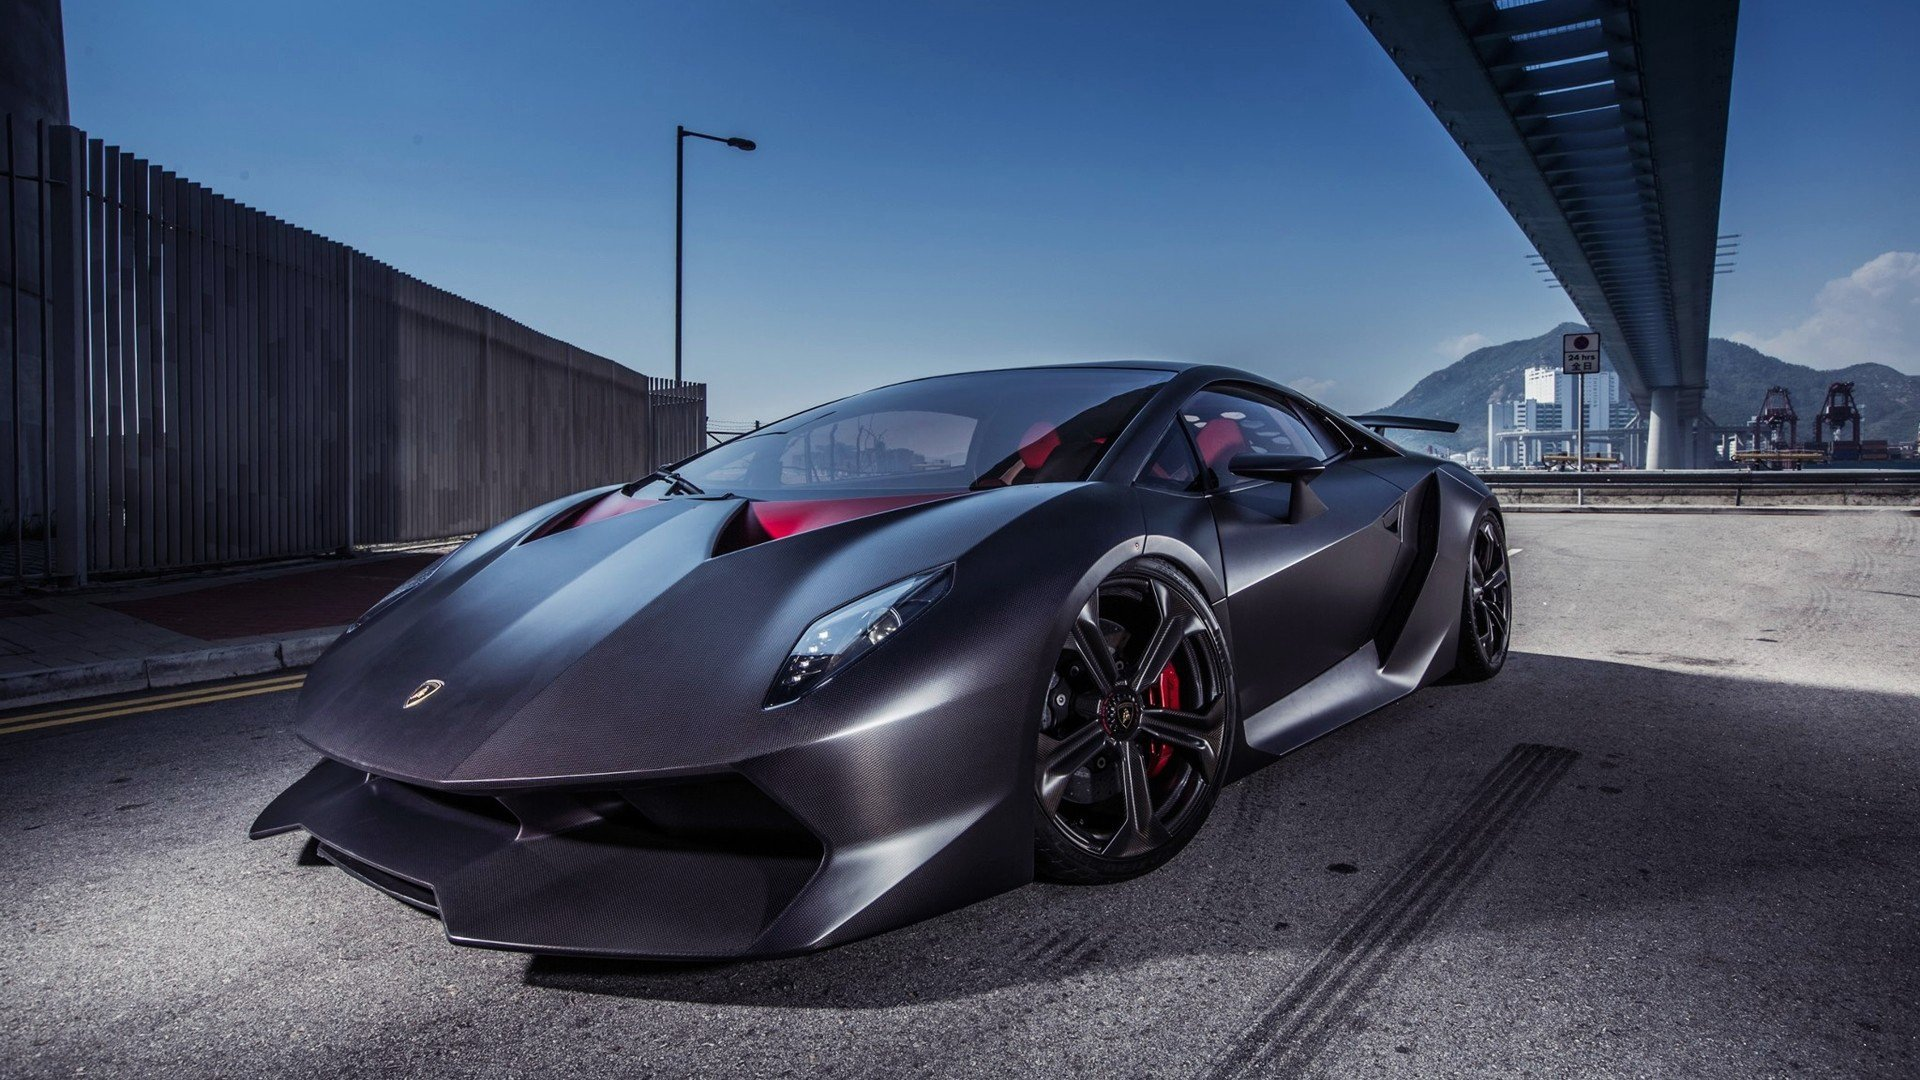 Lamborghini Sesto Elemento Wallpaper Hd Lamborghini Sesto Elemento Hd Wallpaper Background Image